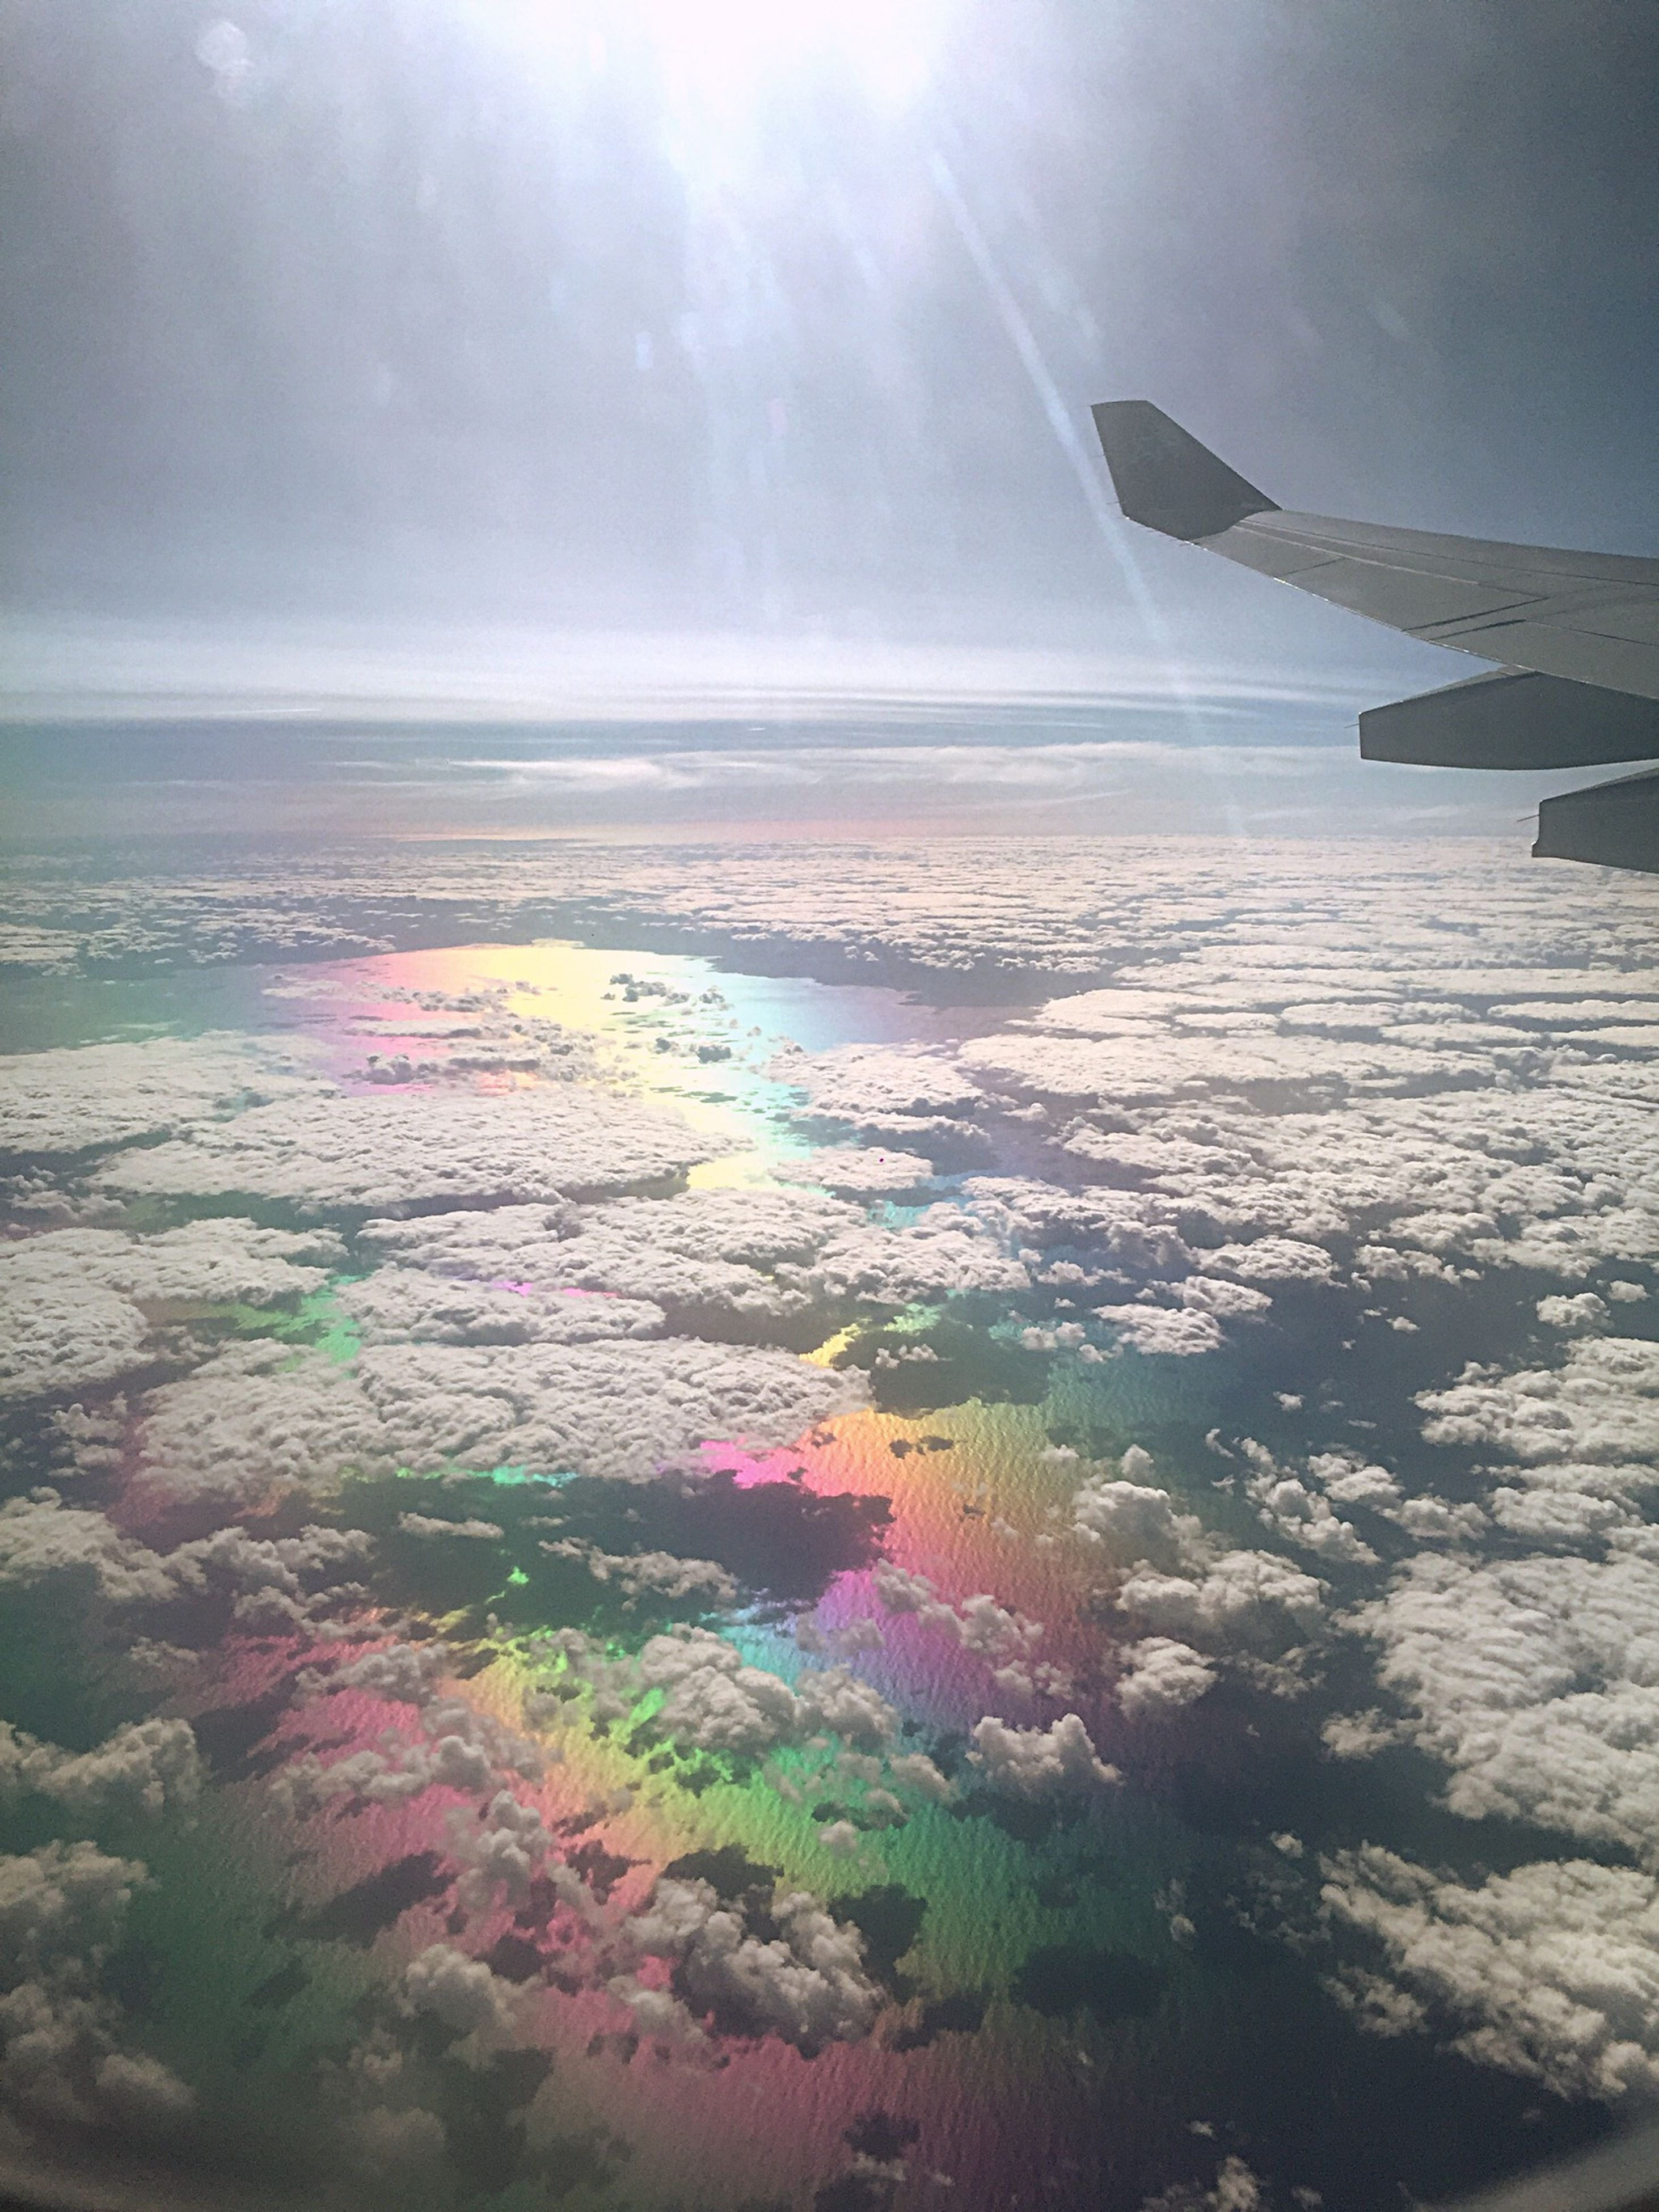 sea, aerial view, horizon over water, transportation, scenics, sky, beauty in nature, aircraft wing, mode of transport, flying, nature, airplane, tranquil scene, water, tranquility, travel, sunlight, sun, air vehicle, cloud - sky